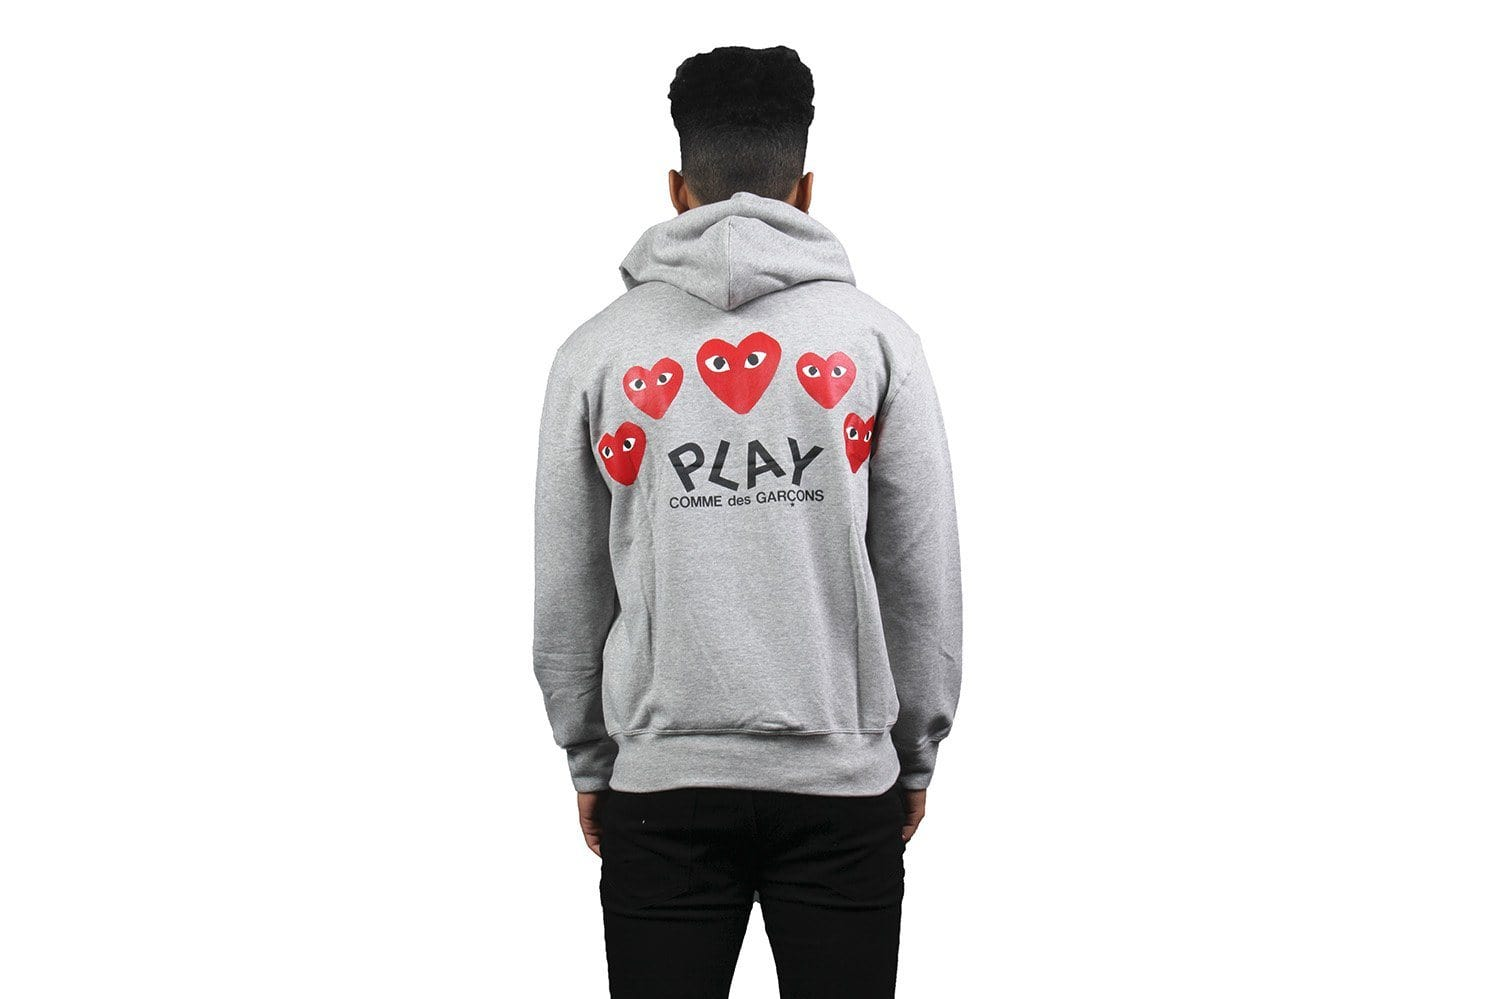 RED HEART GREY ZIP HOODIE - AZT250 MENS SOFTGOODS COMME DES GARCONS